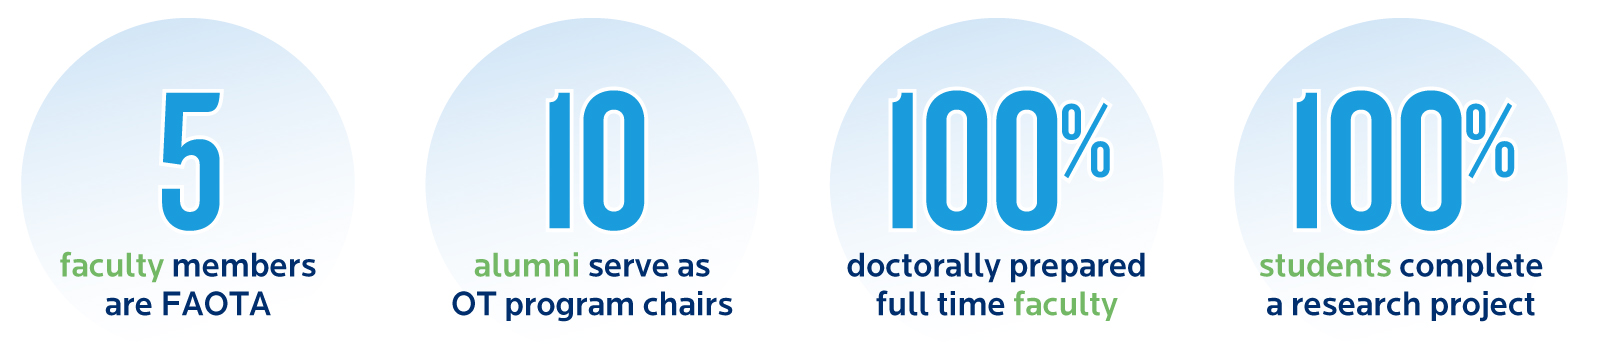 Occupational Therapy Facts